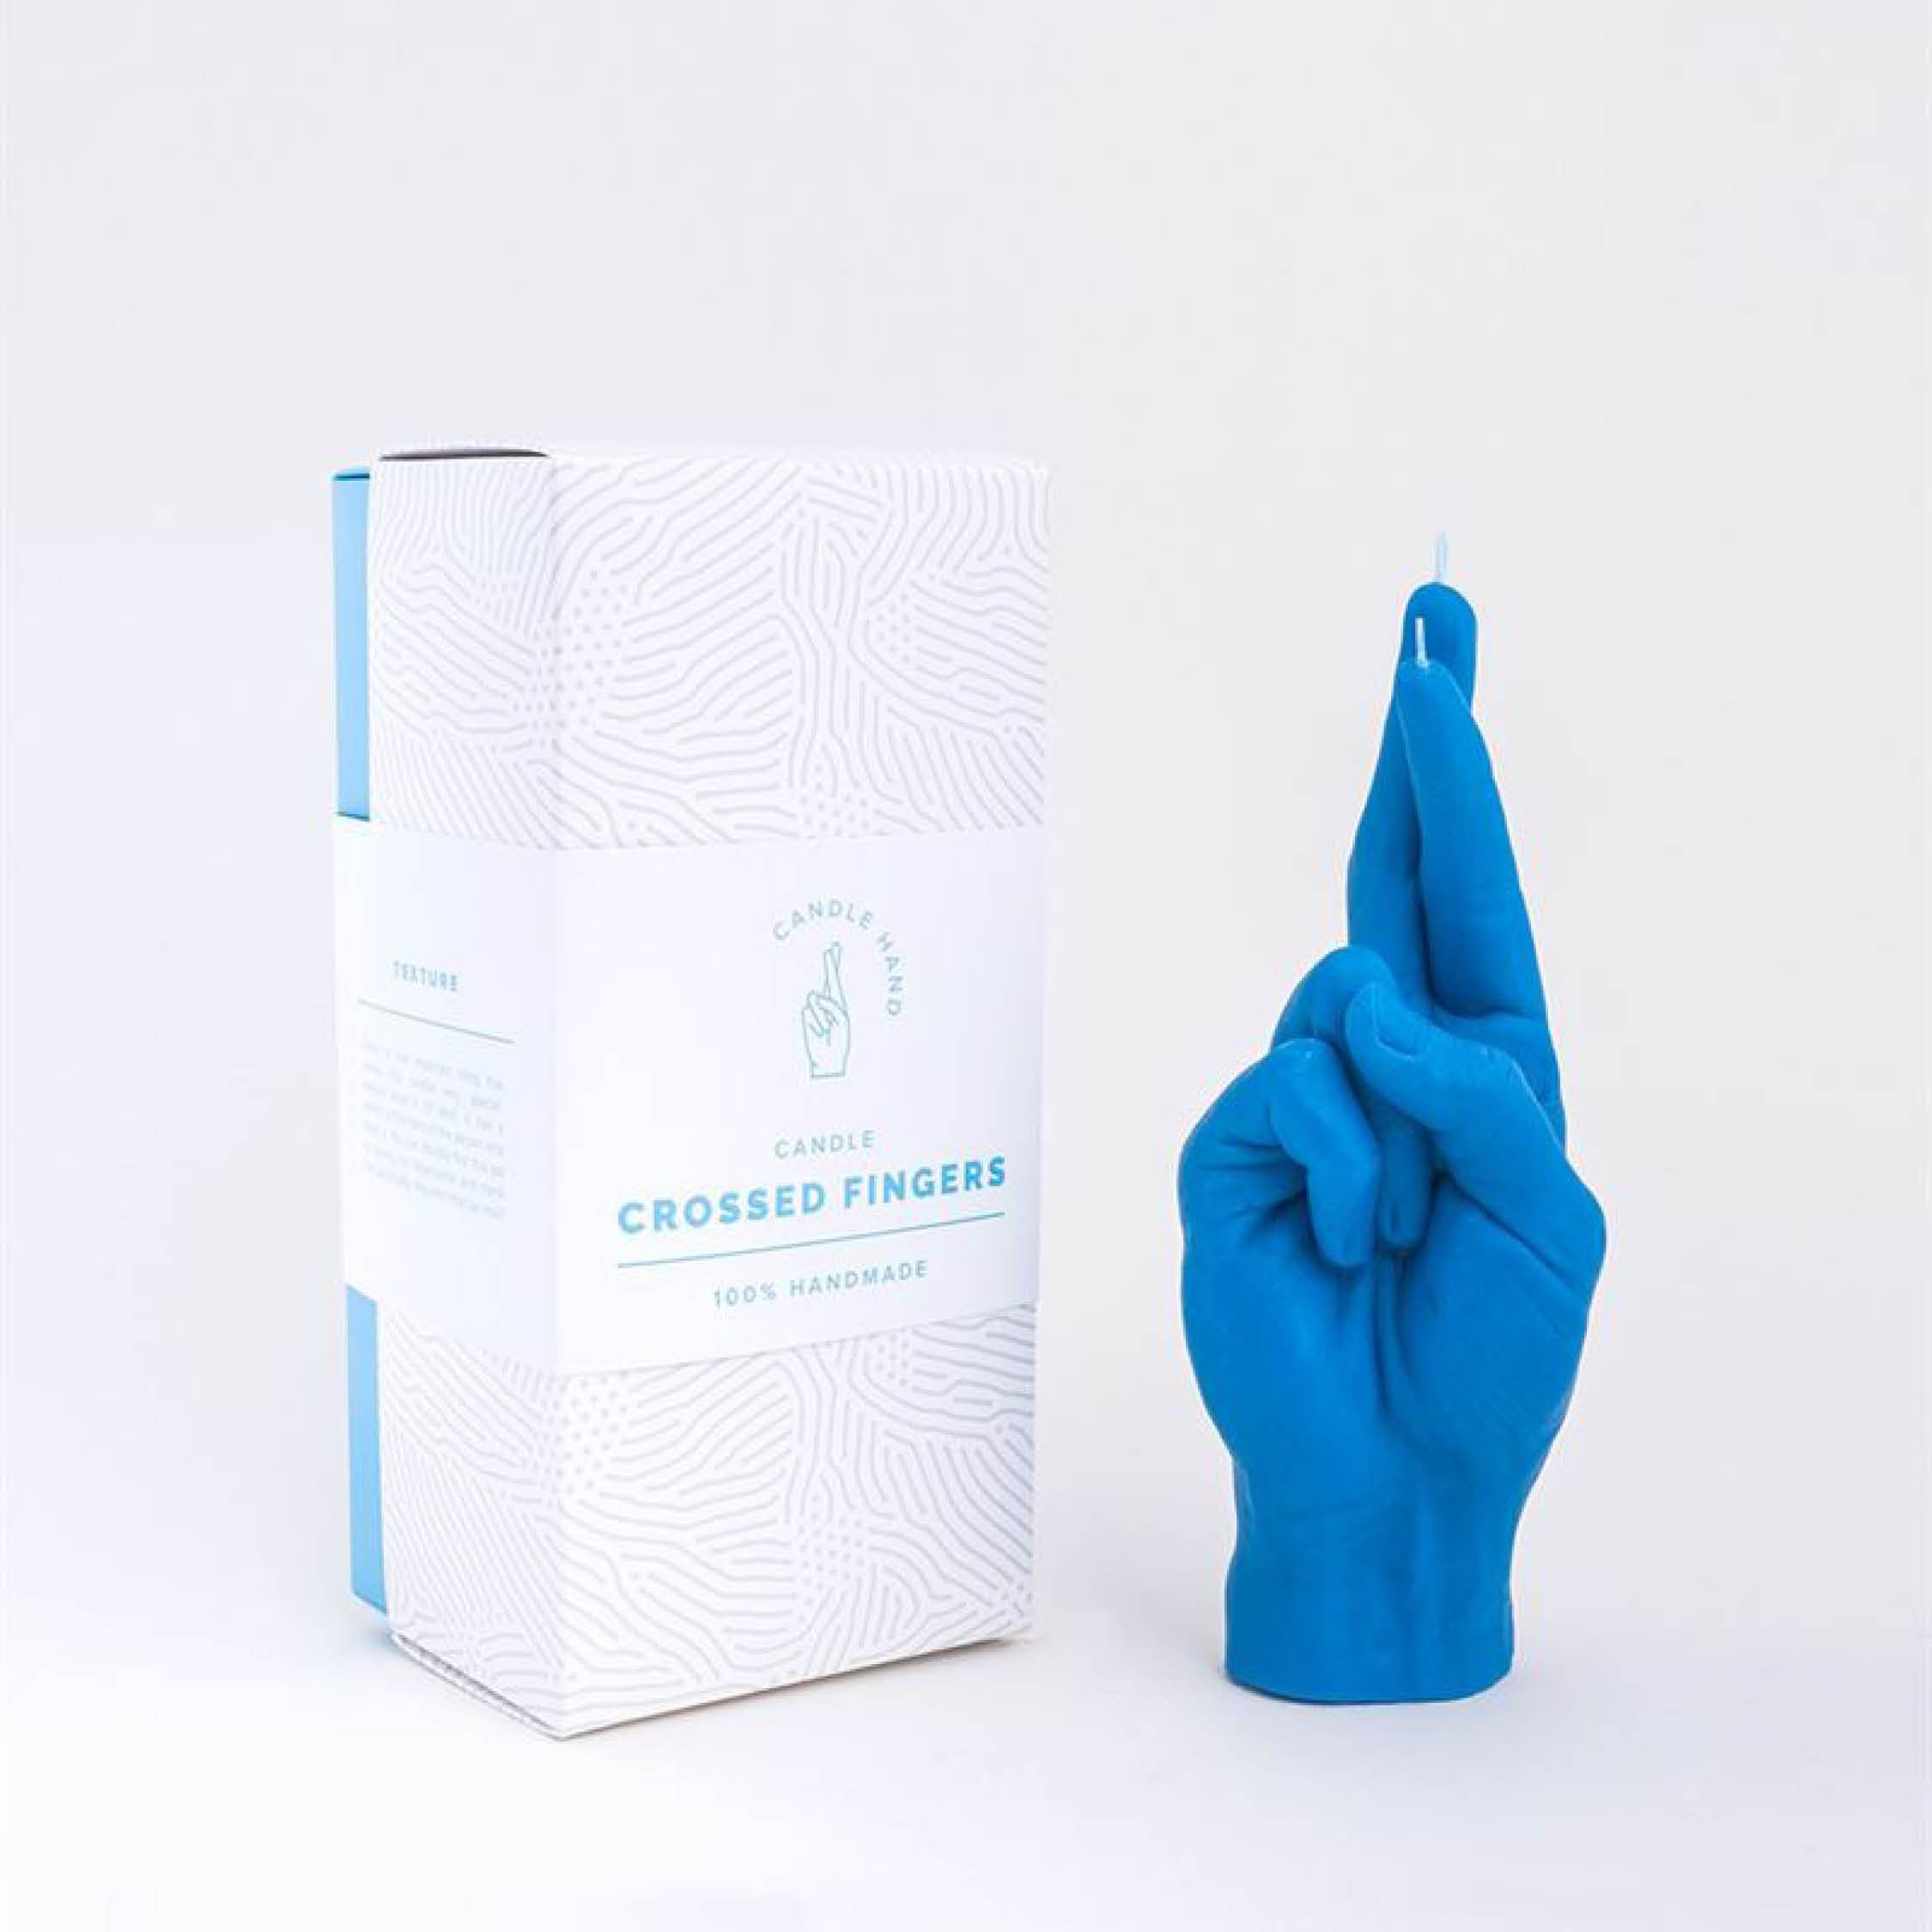 CandleHand - Crossed Fingers in Blue